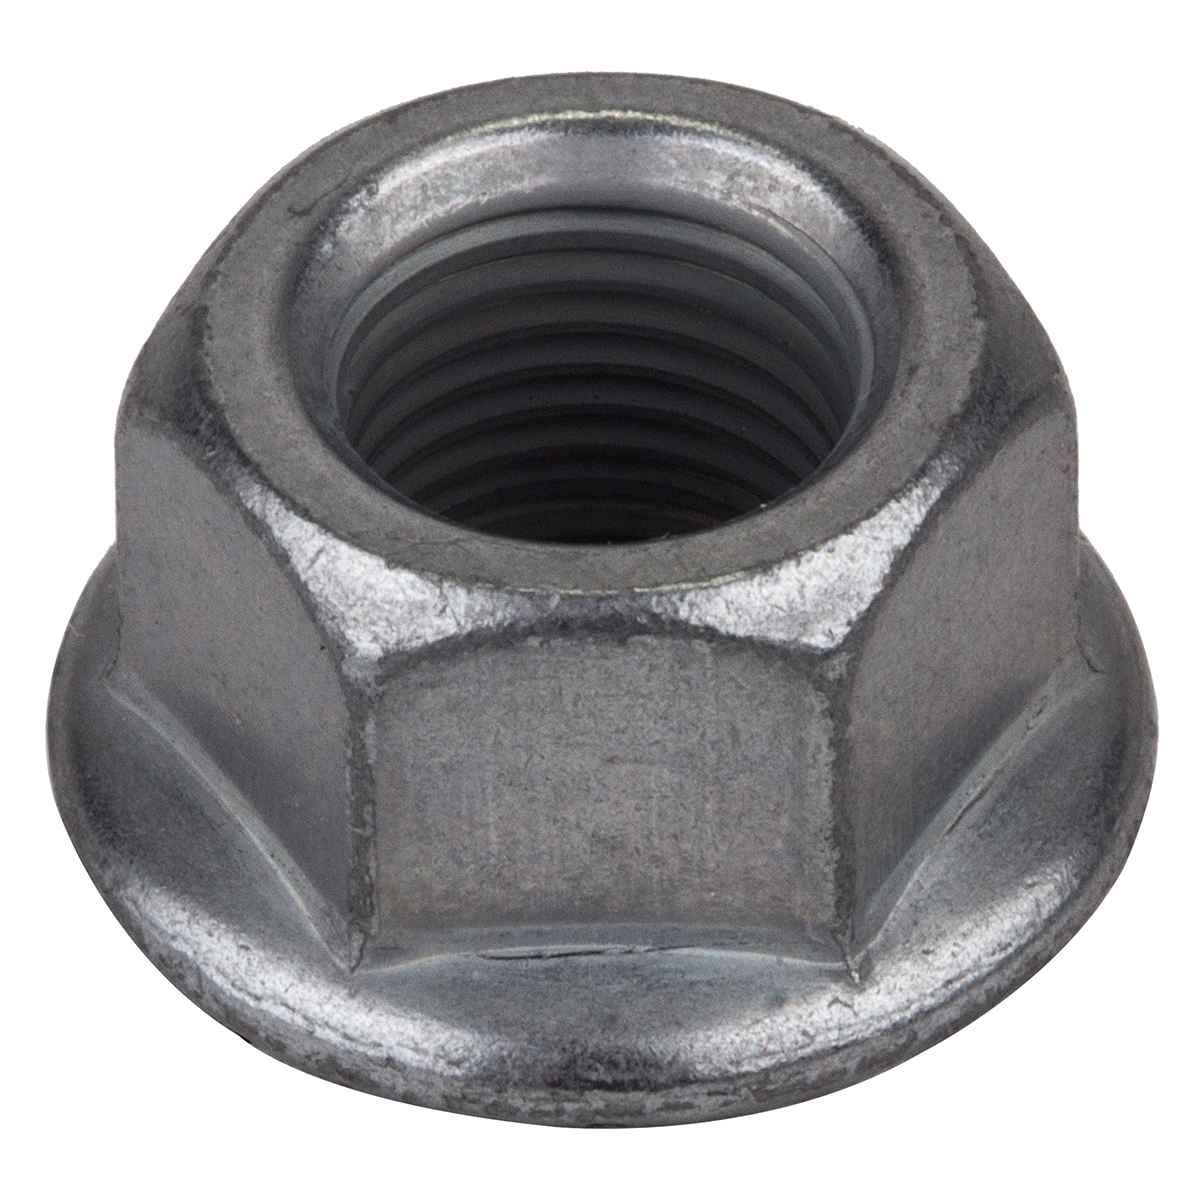 "Sunlite Bicycle Hub Axle Nut - Flanged Grey, 3/8"", 50pk"